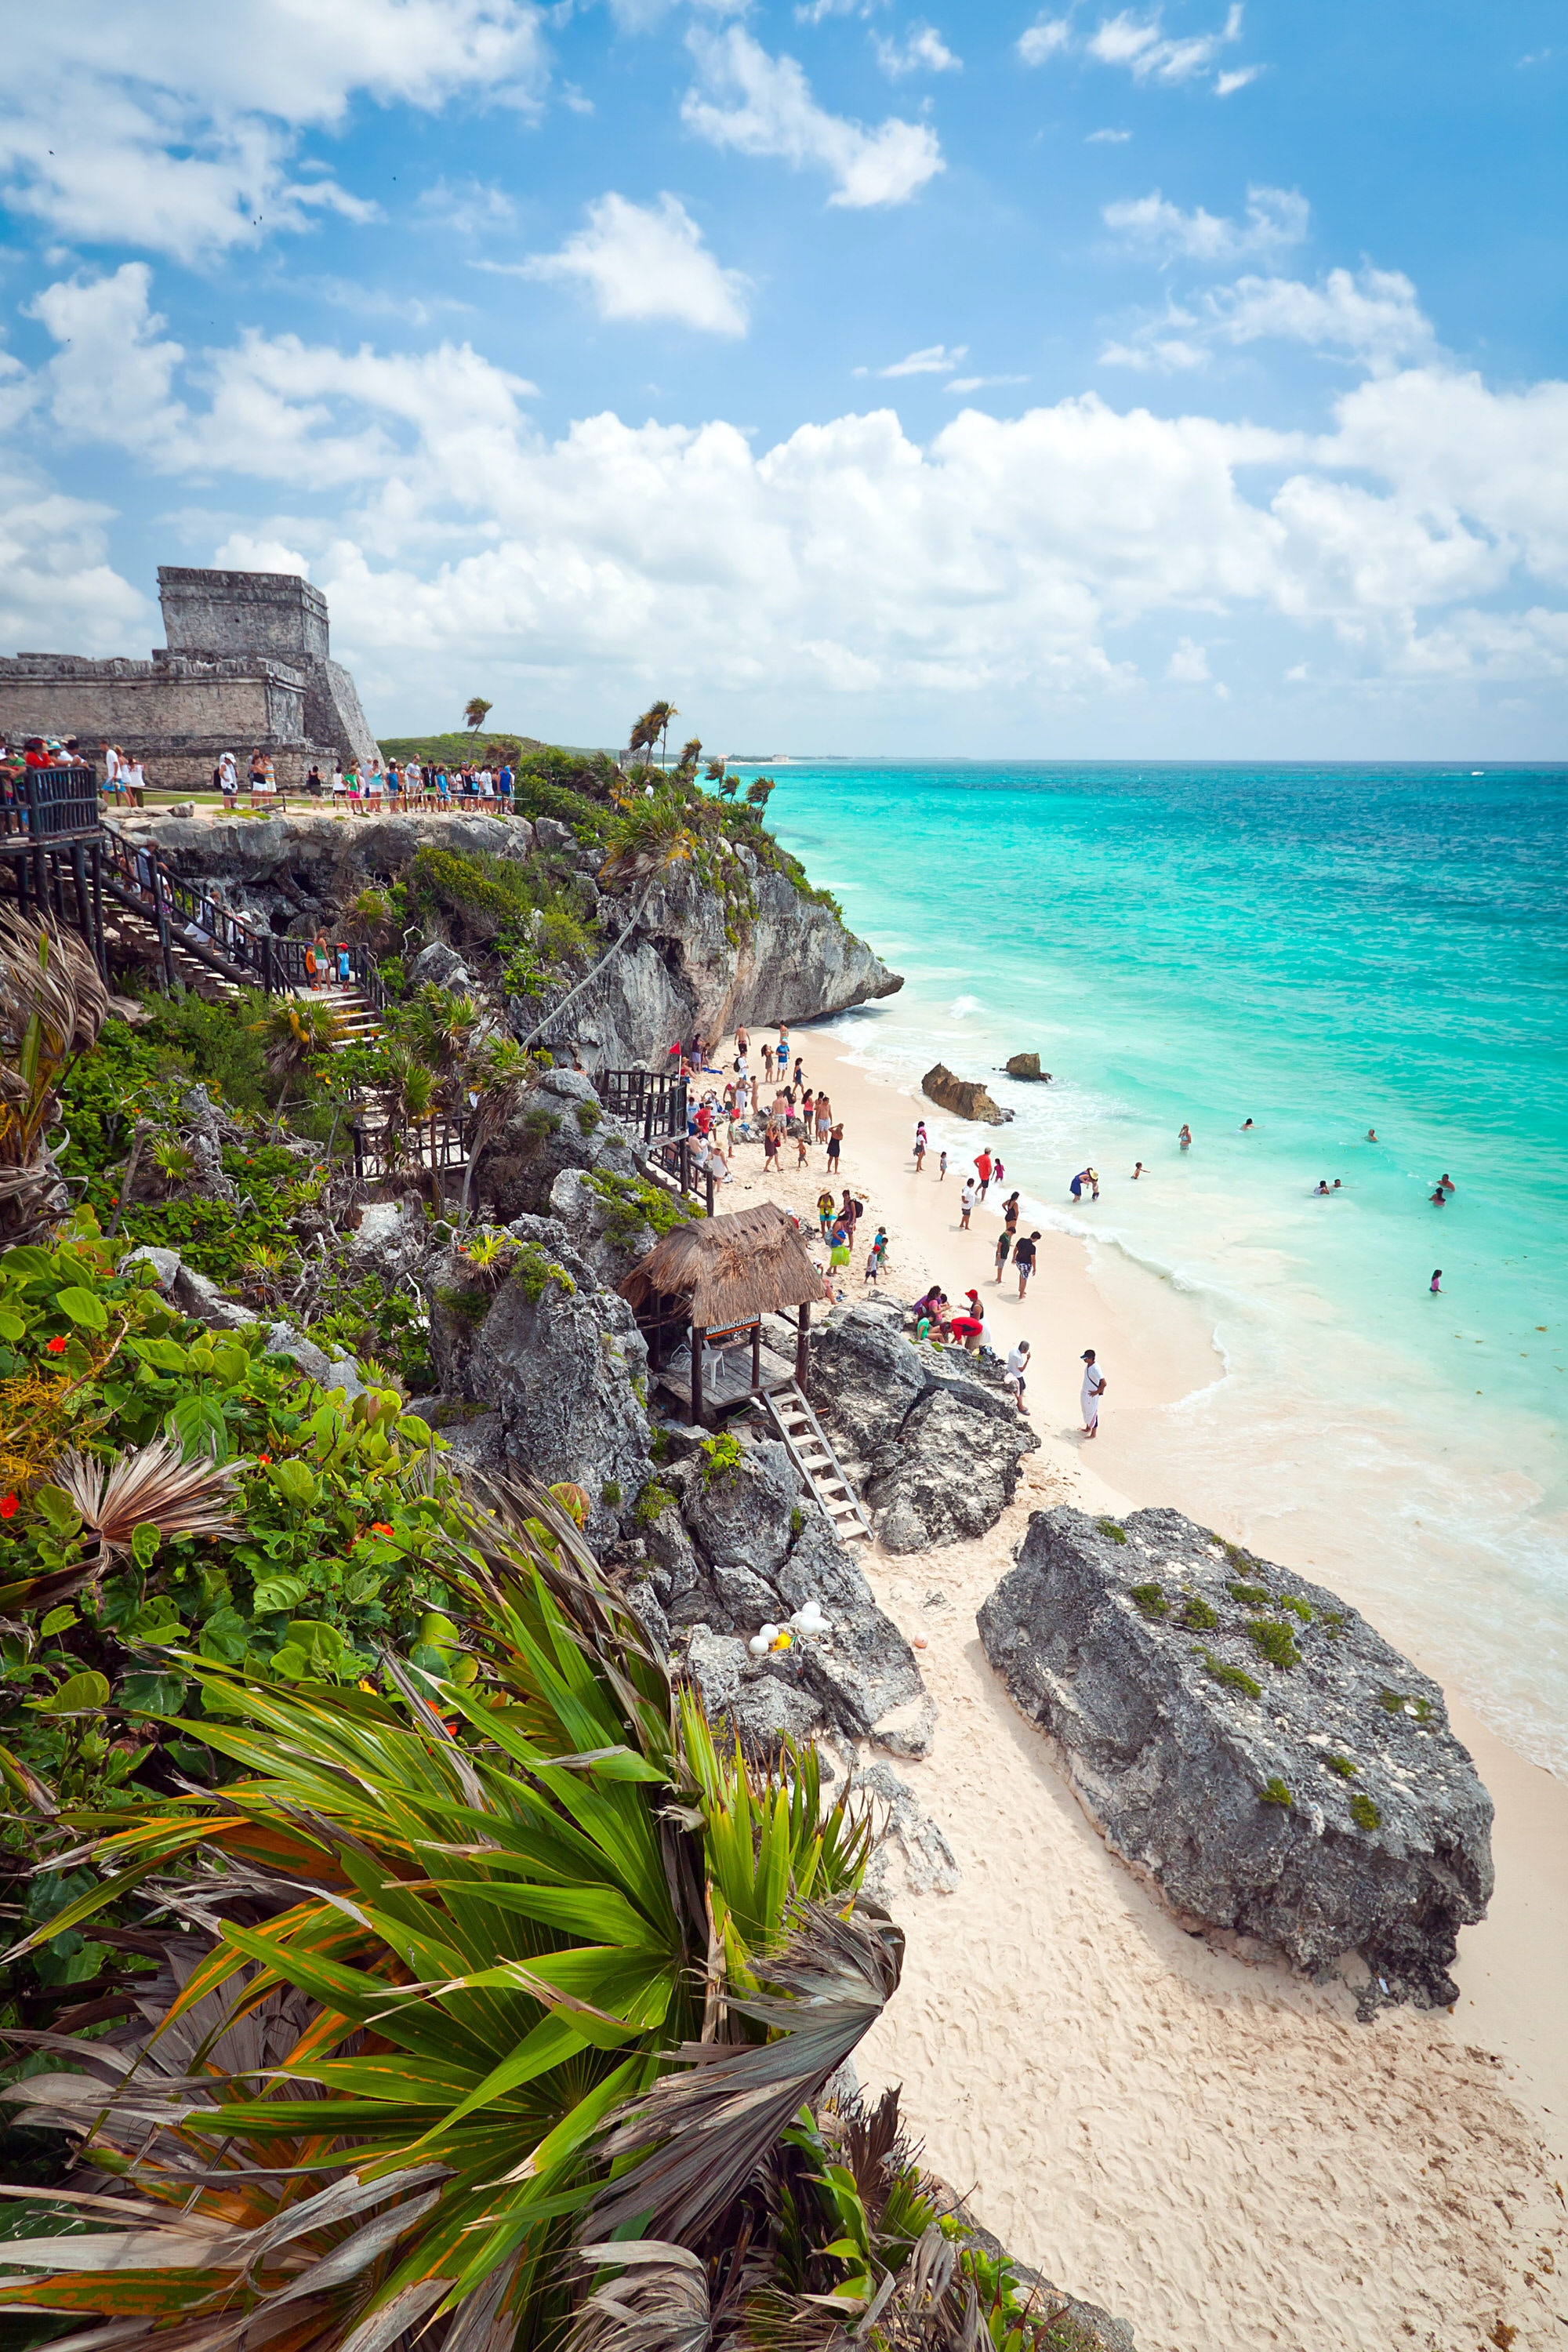 Ancient Mayan ruins on the beach of Tulum, Mexico